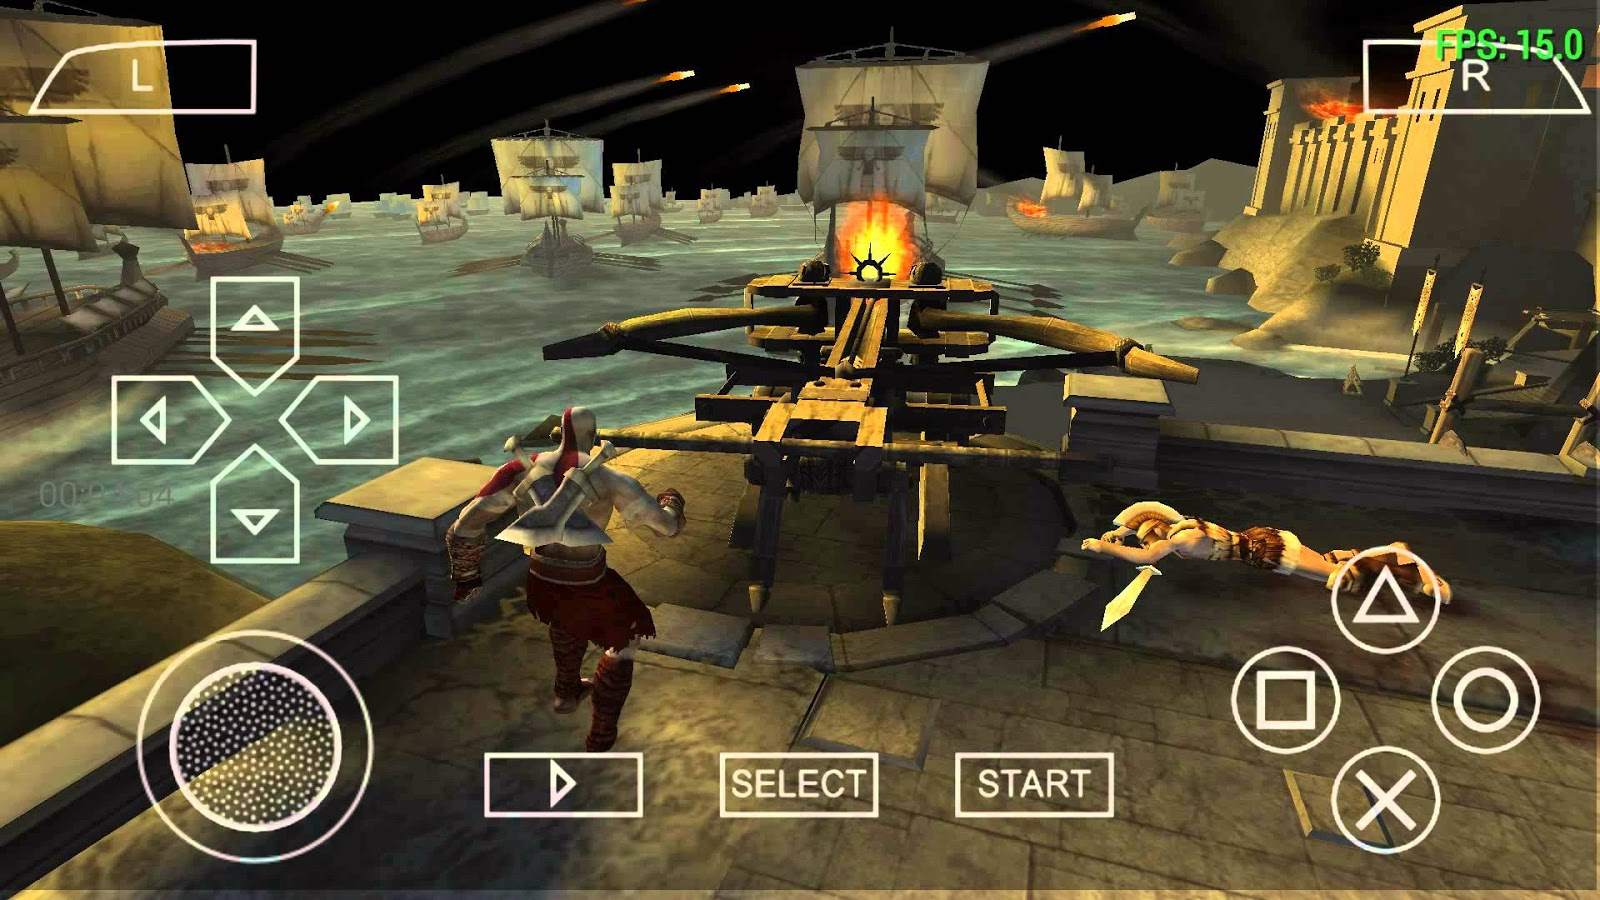 Download Game File Iso Untuk Ppsspp